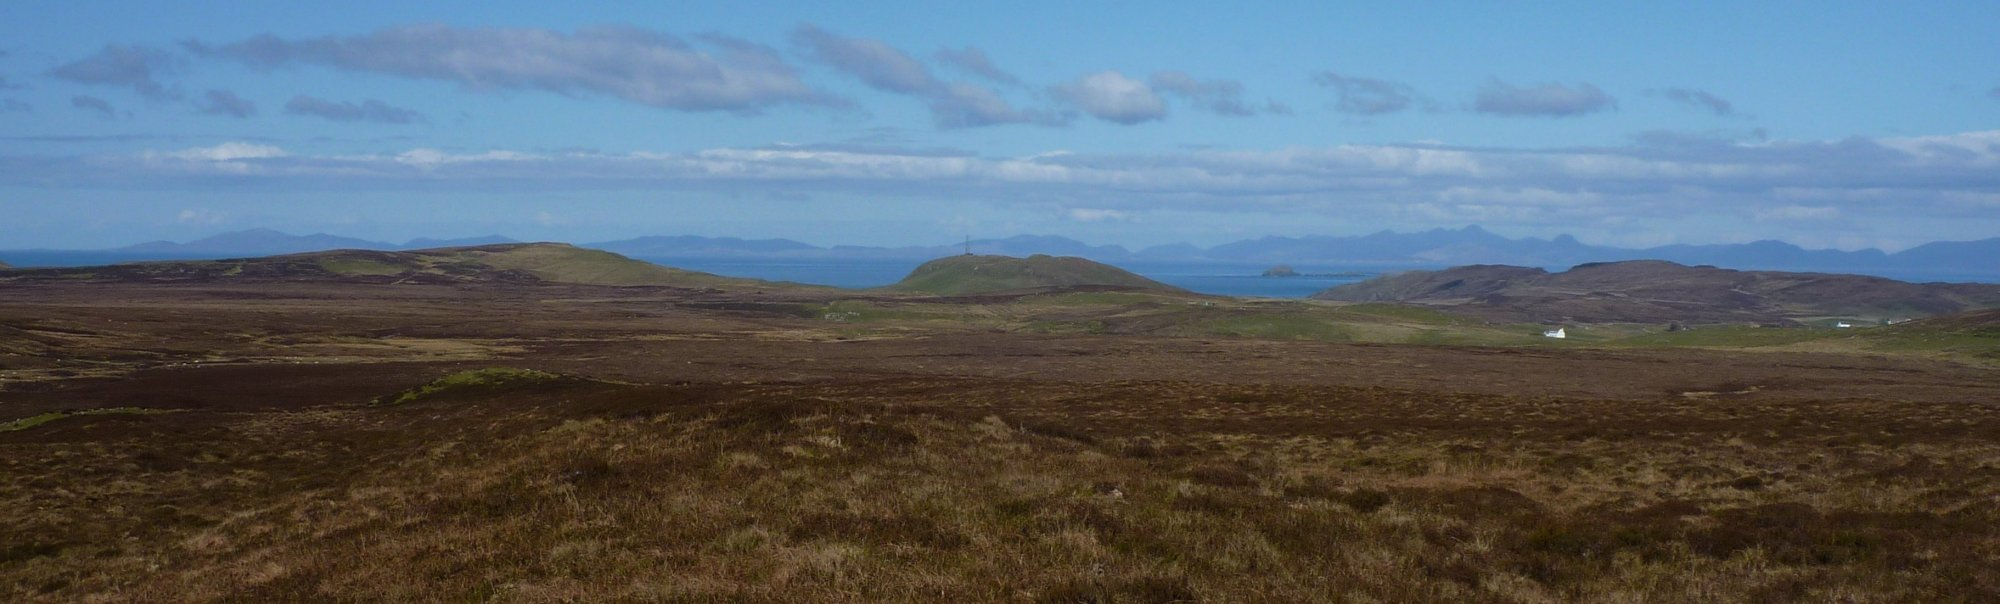 Looking back across the soggy wasteland to Cnoc Roll